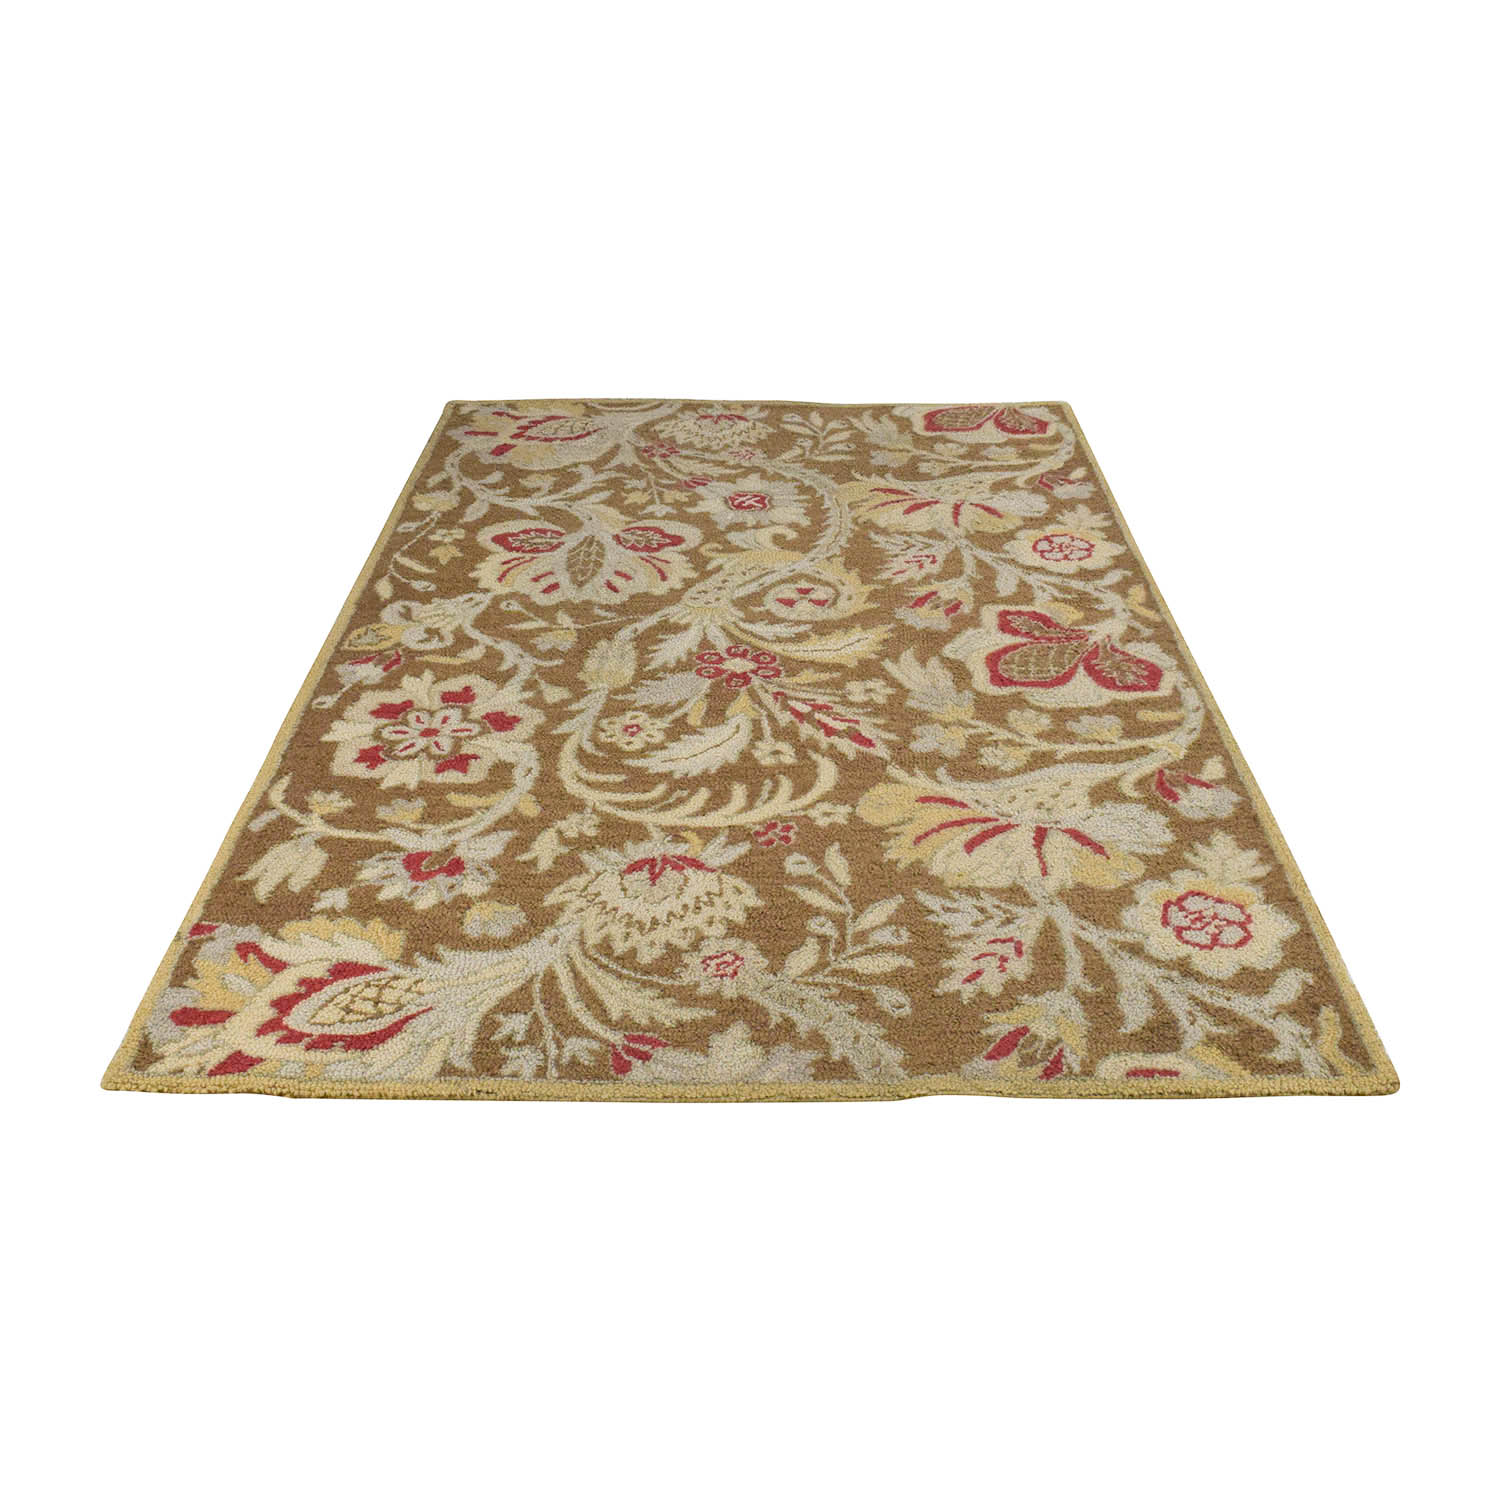 Pottery Barn Area Rug / Decor